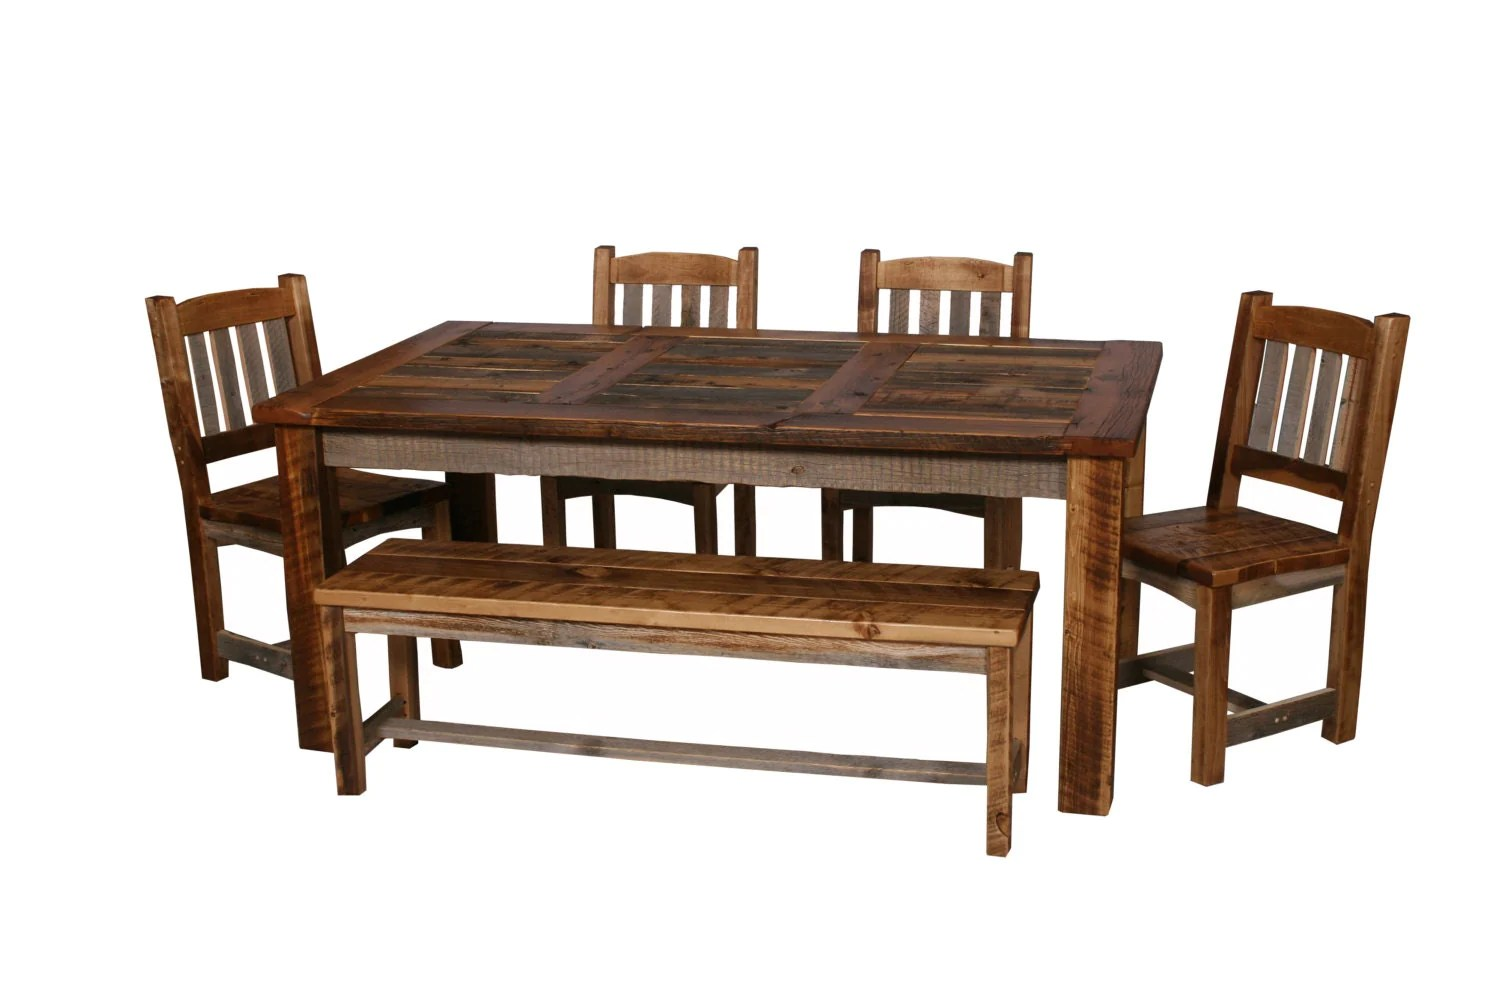 barnwood dining room chairs used massage for sale natural barn wood table set furniture